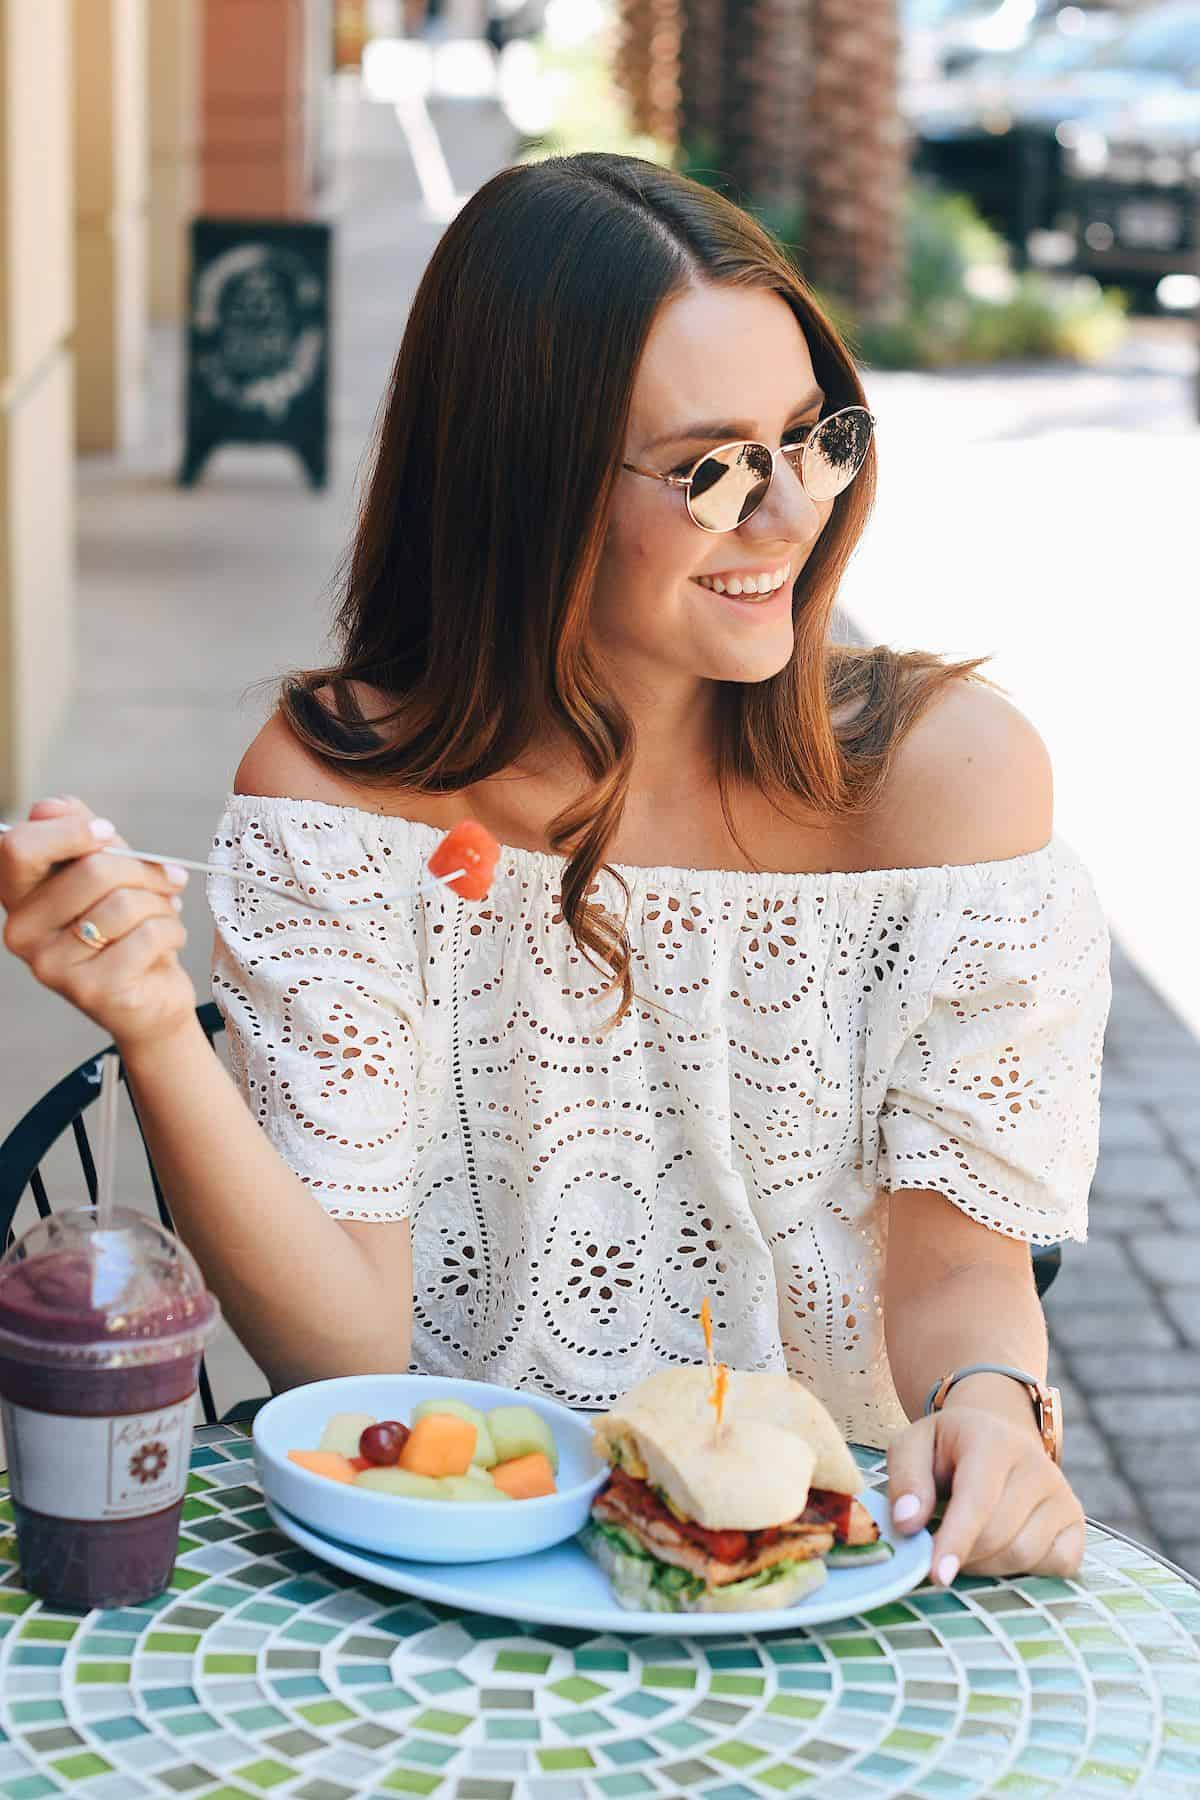 woman wearing sunglasses sitting at an outdoor cafe eating a fruit salad